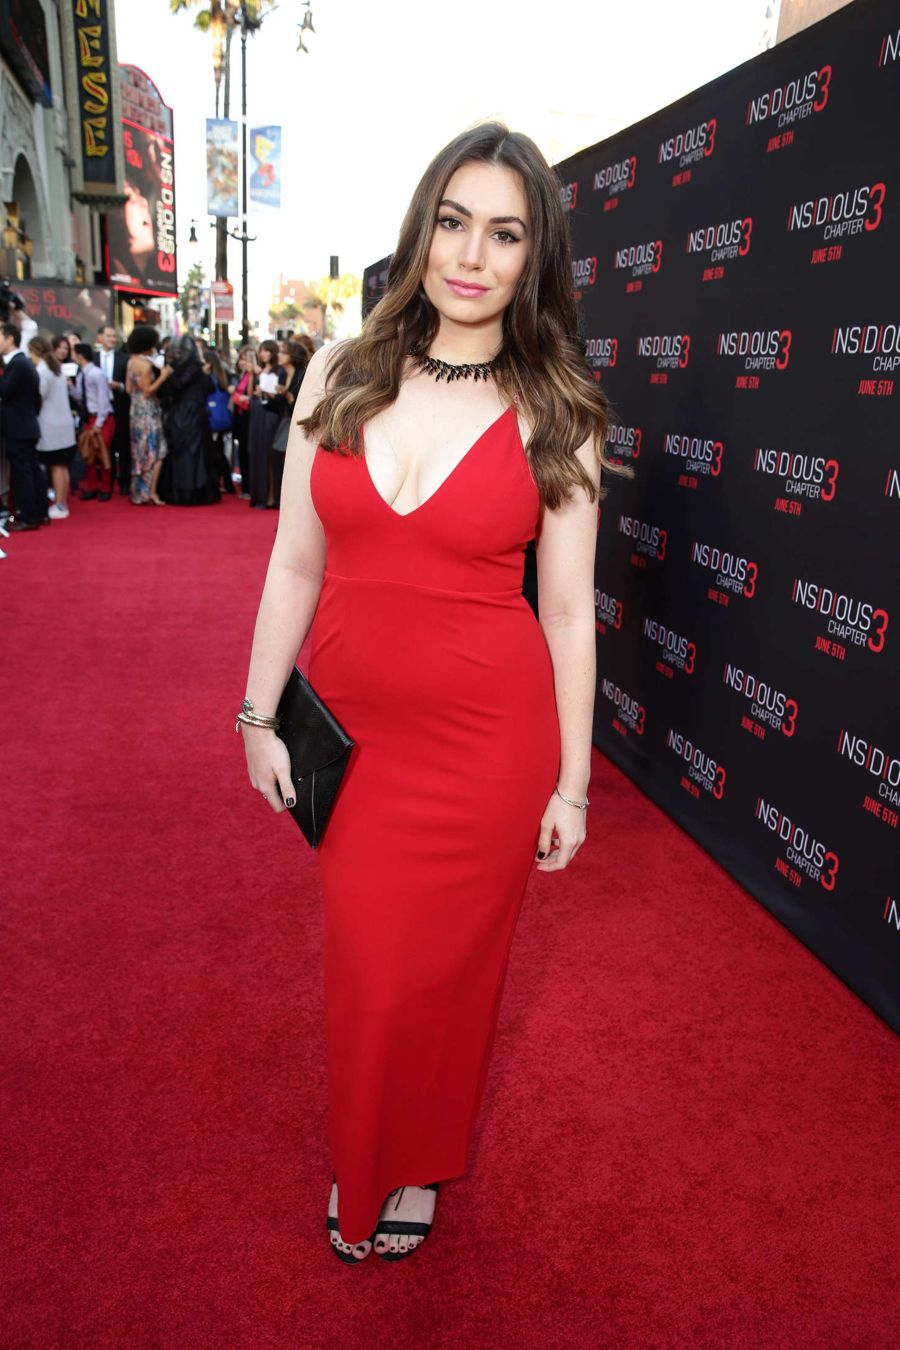 Sophie Simmons - 'Insidious: Chapter 3' Premiere